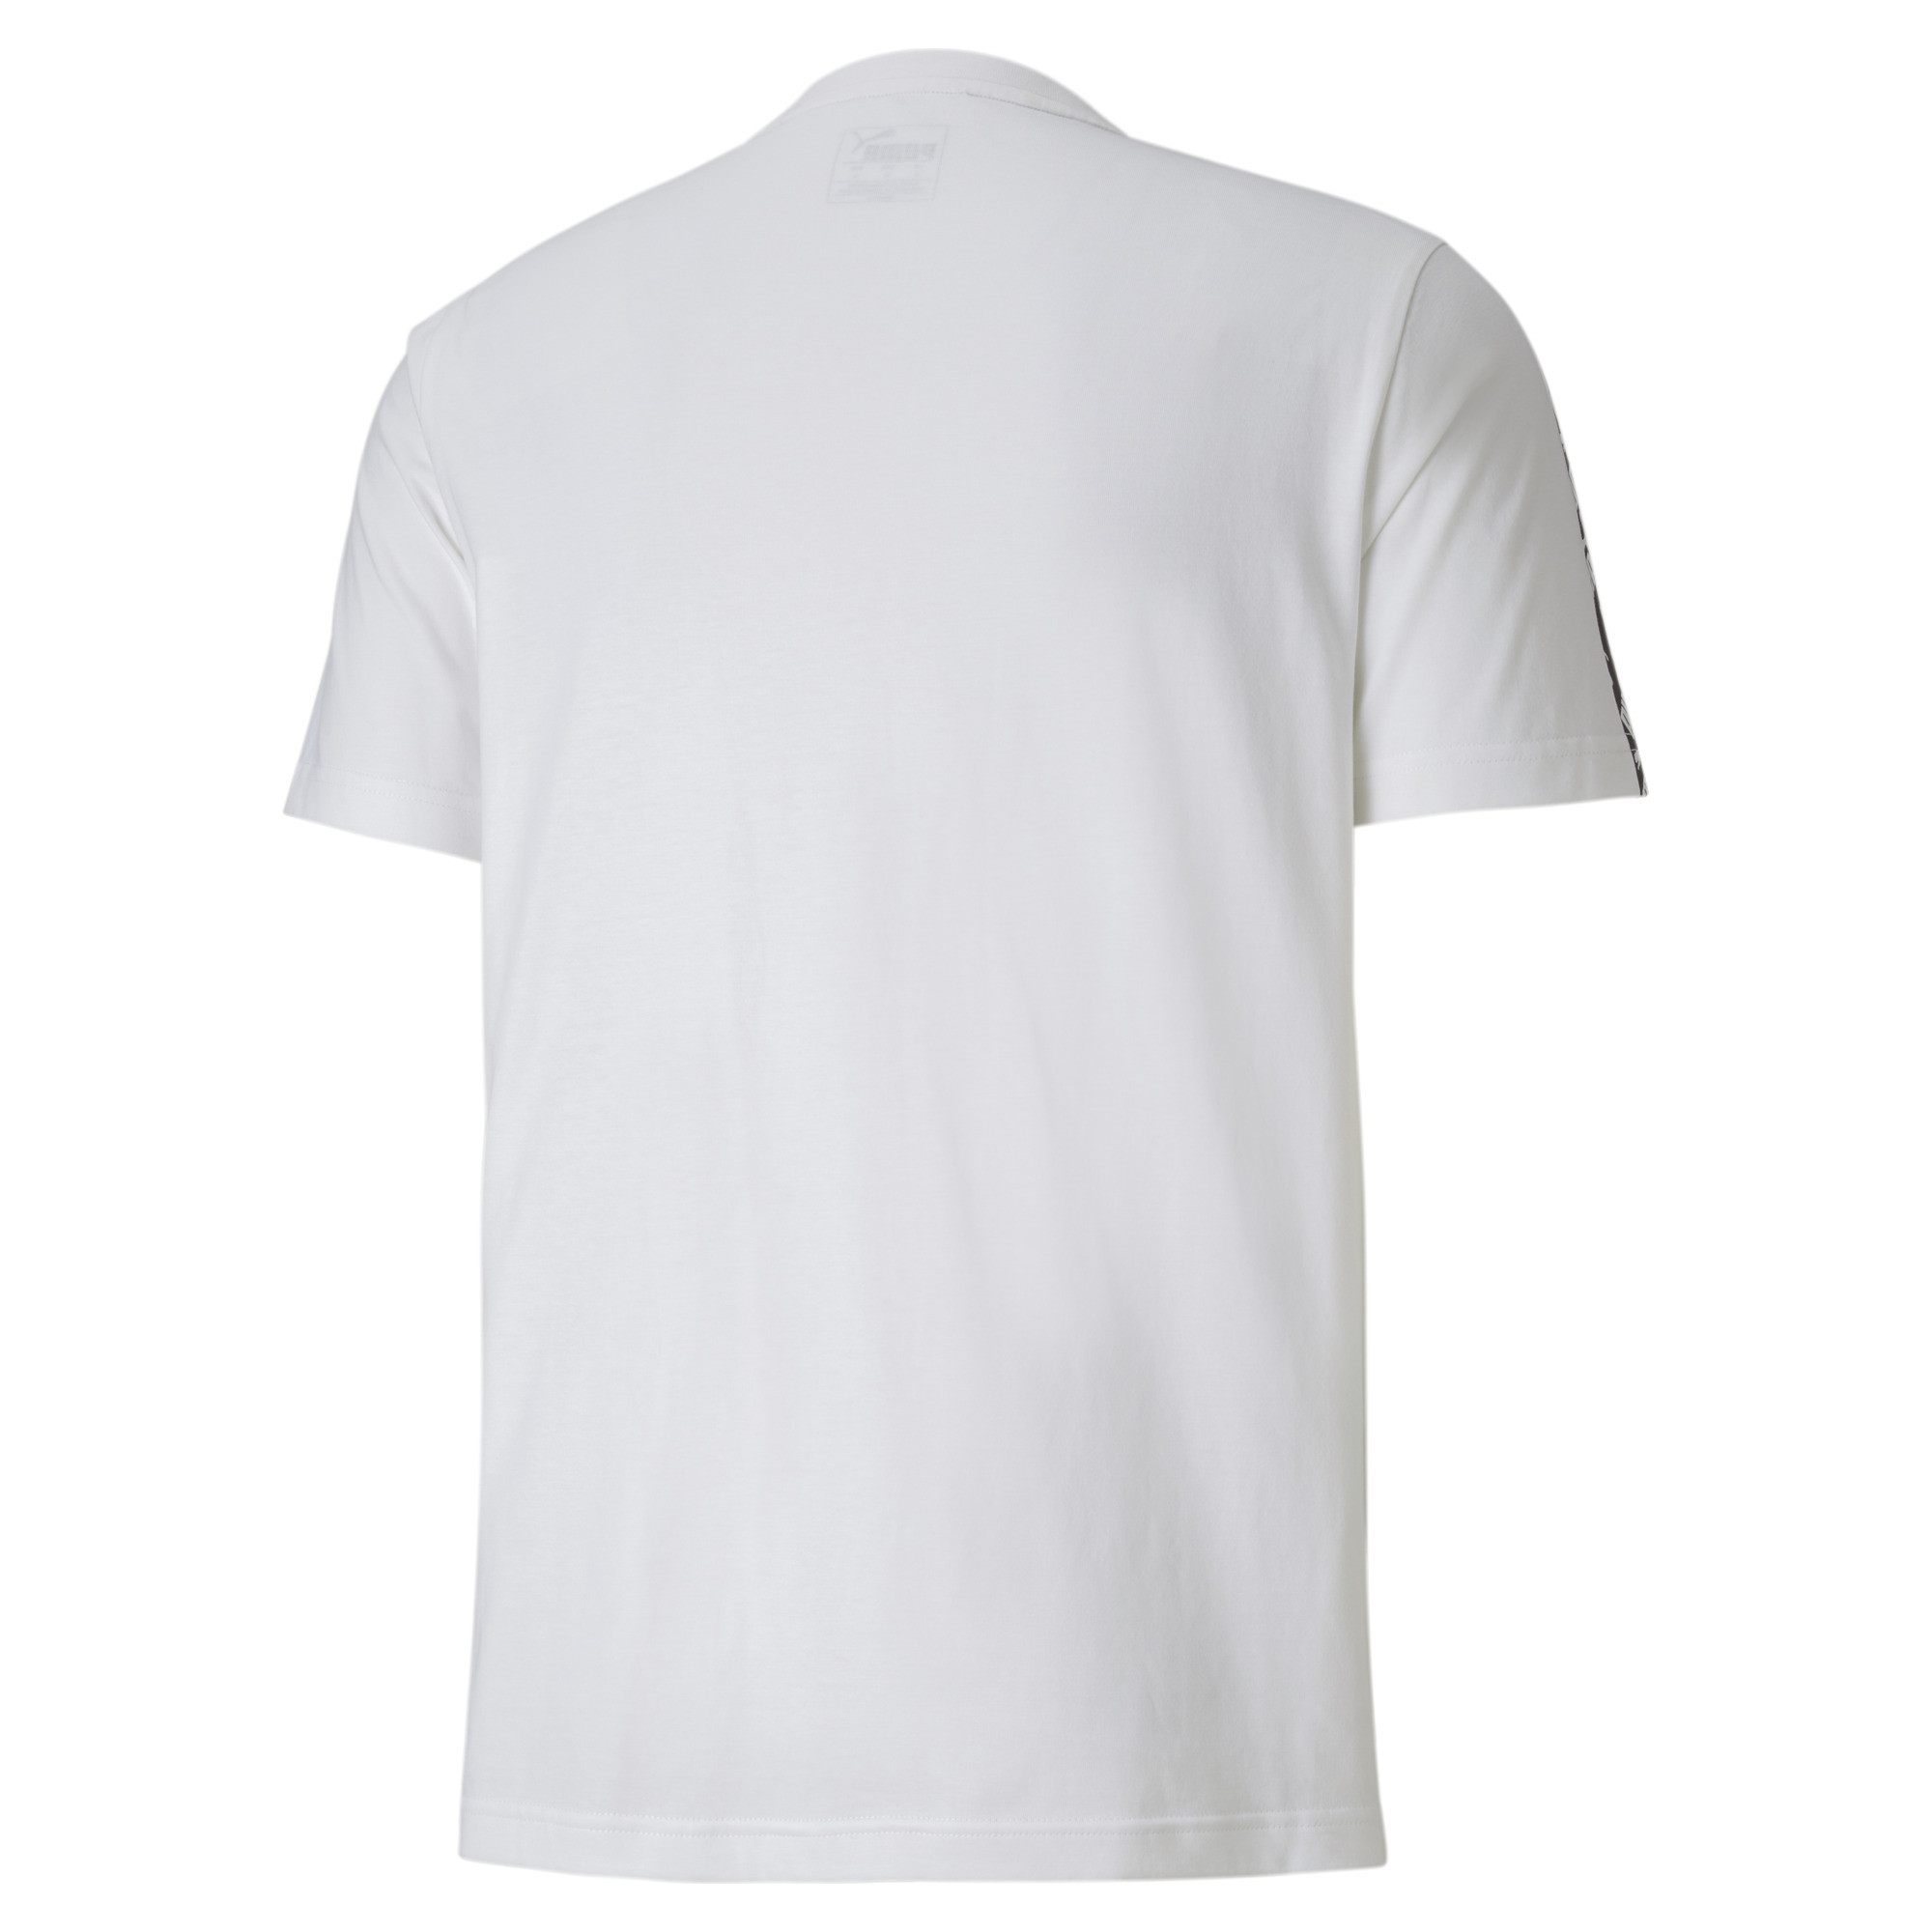 PUMA-Amplified-Men-039-s-Tee-Men-Tee-Basics thumbnail 5